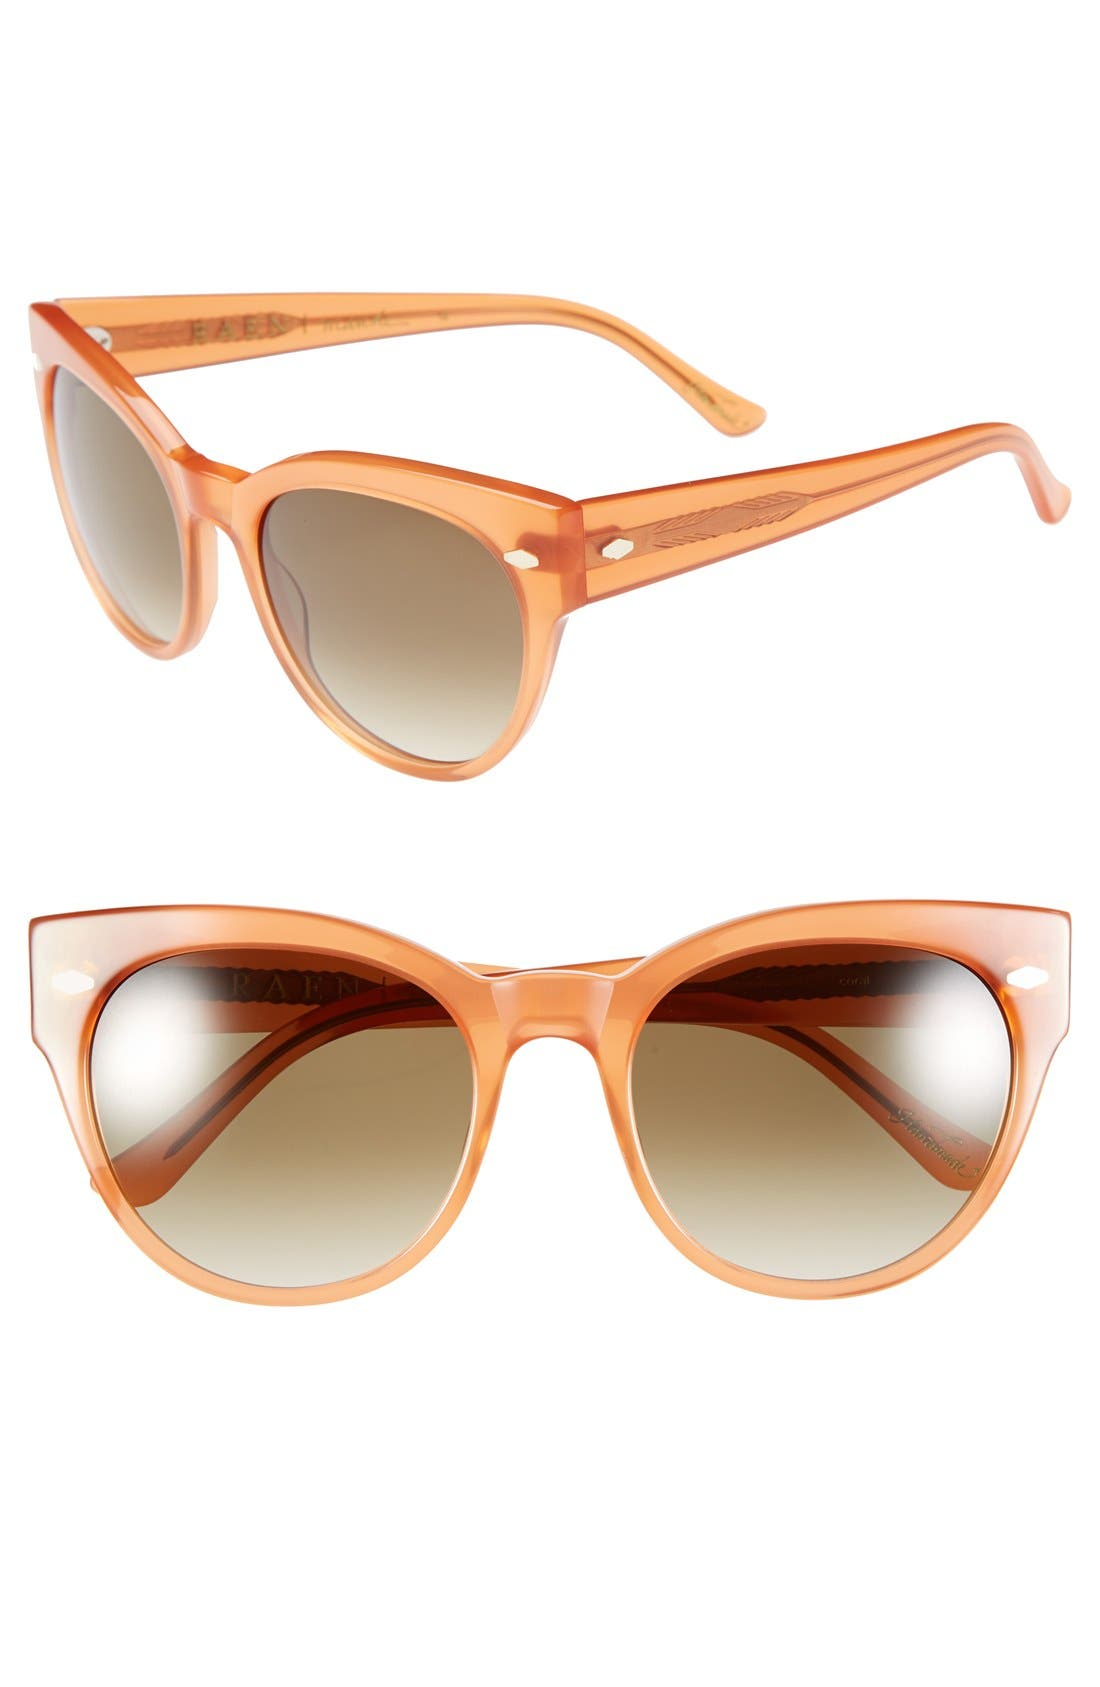 Main Image - Furla 54mm Sunglasses